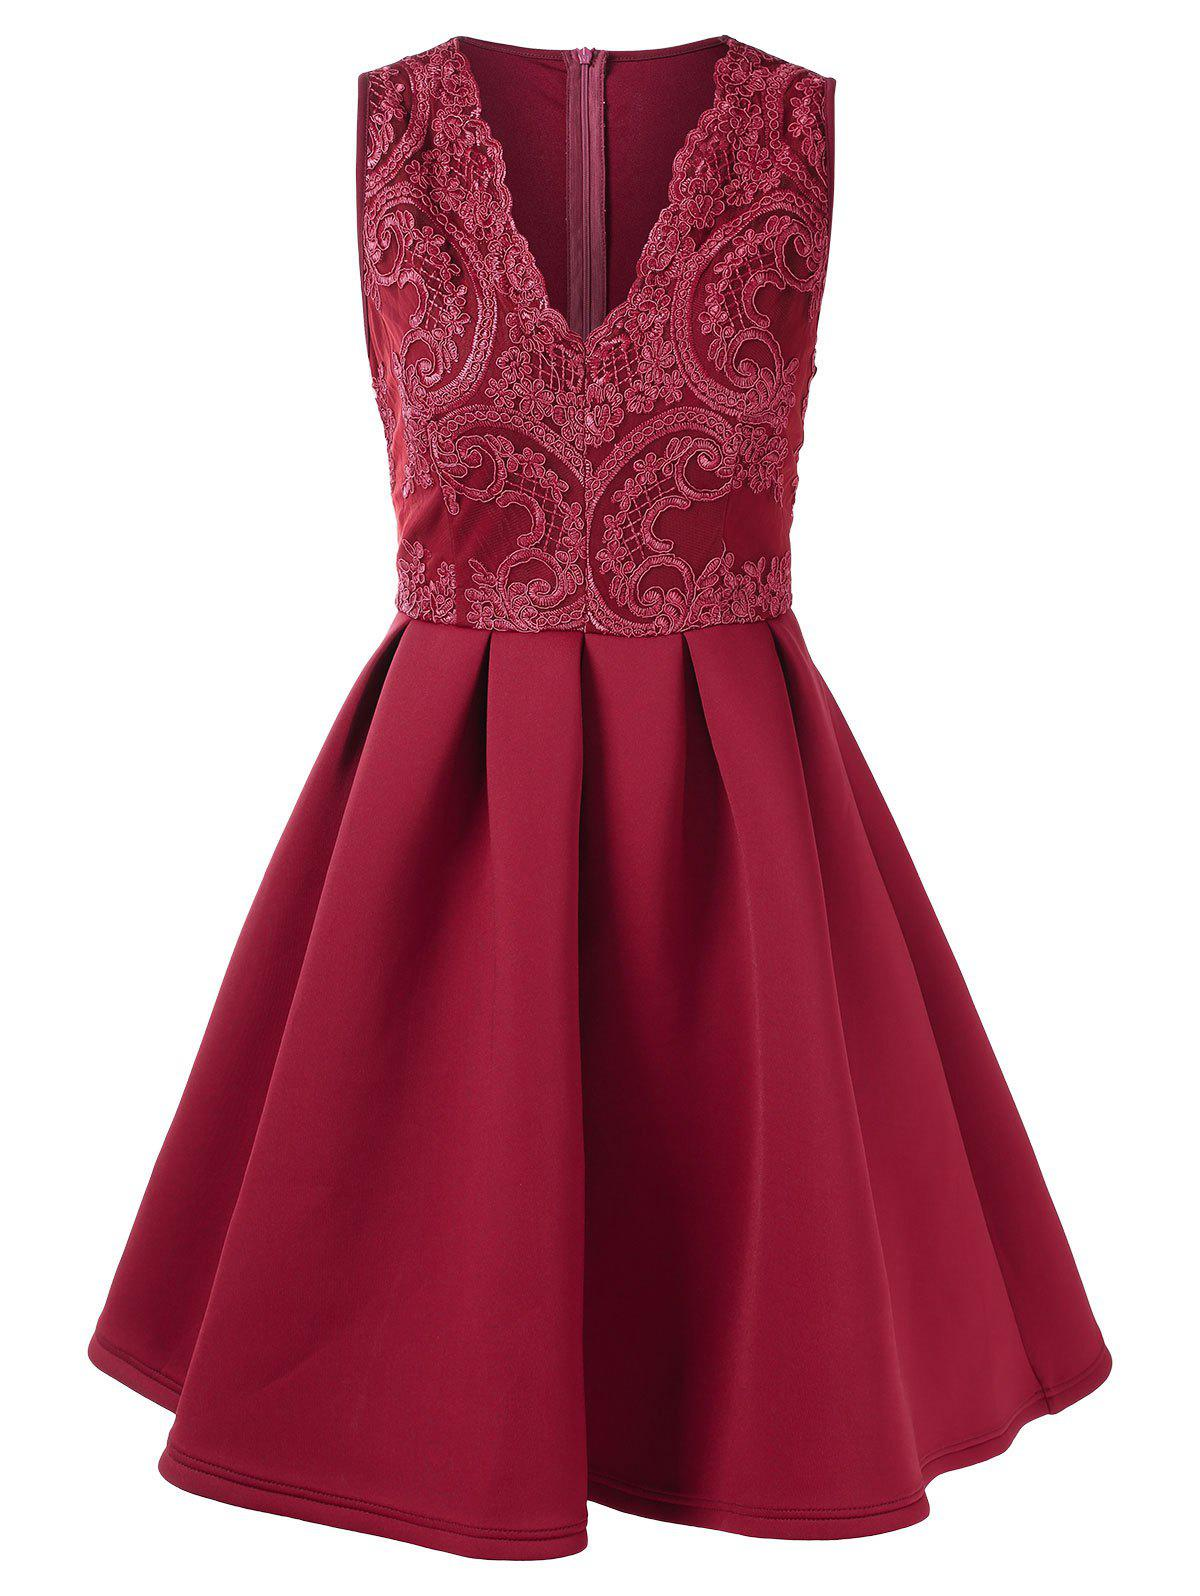 Lace Panel High Waisted Sleeveless Flare Dress - RED L